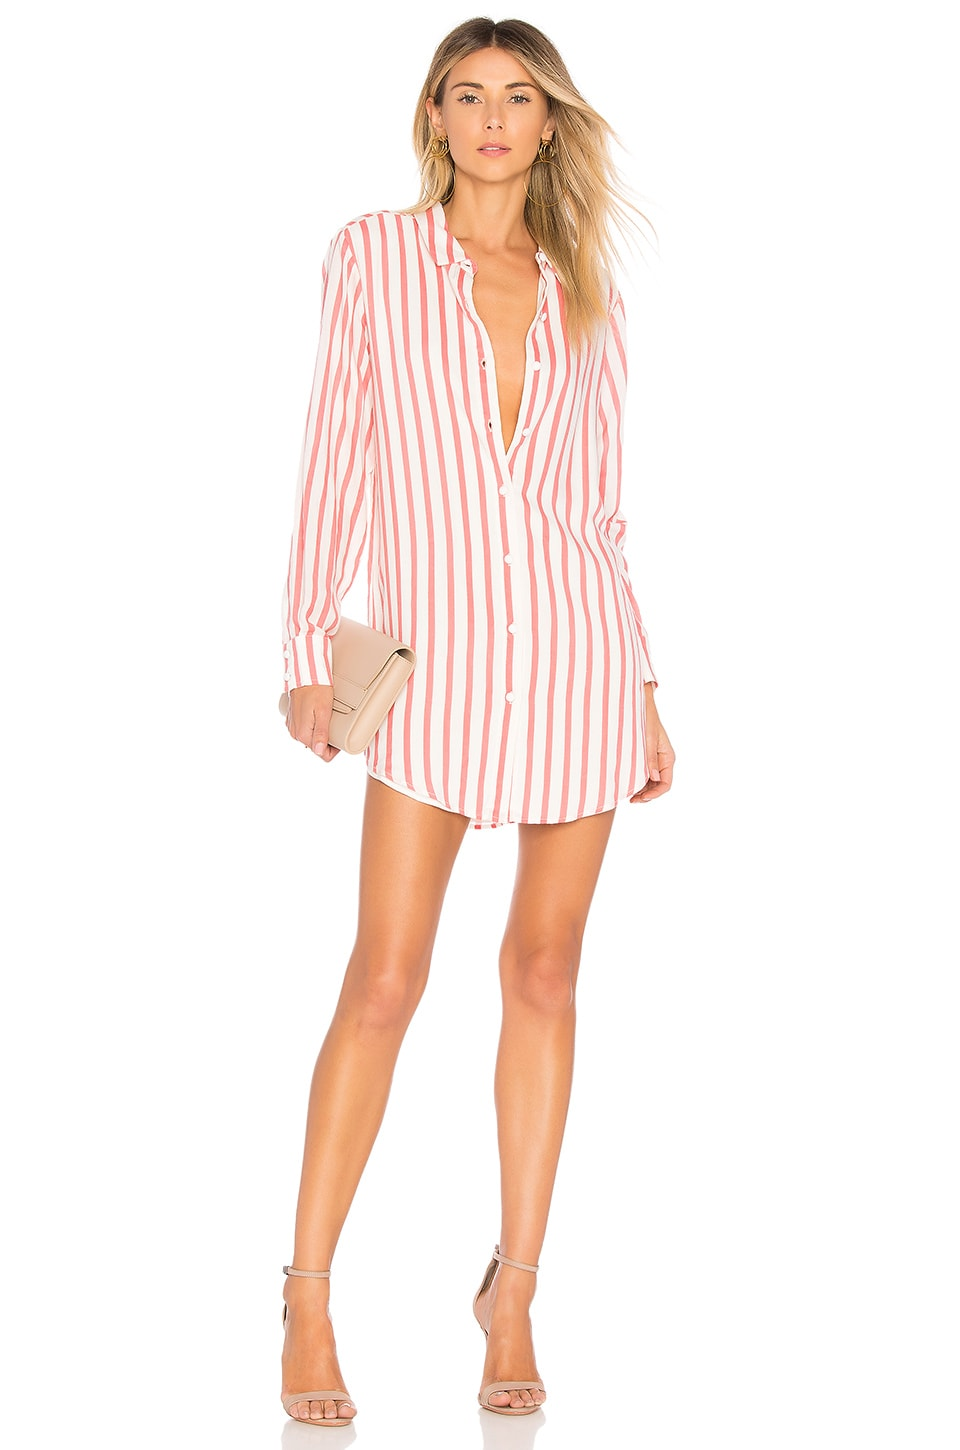 L'Academie Nicole Dress in Red Stripe